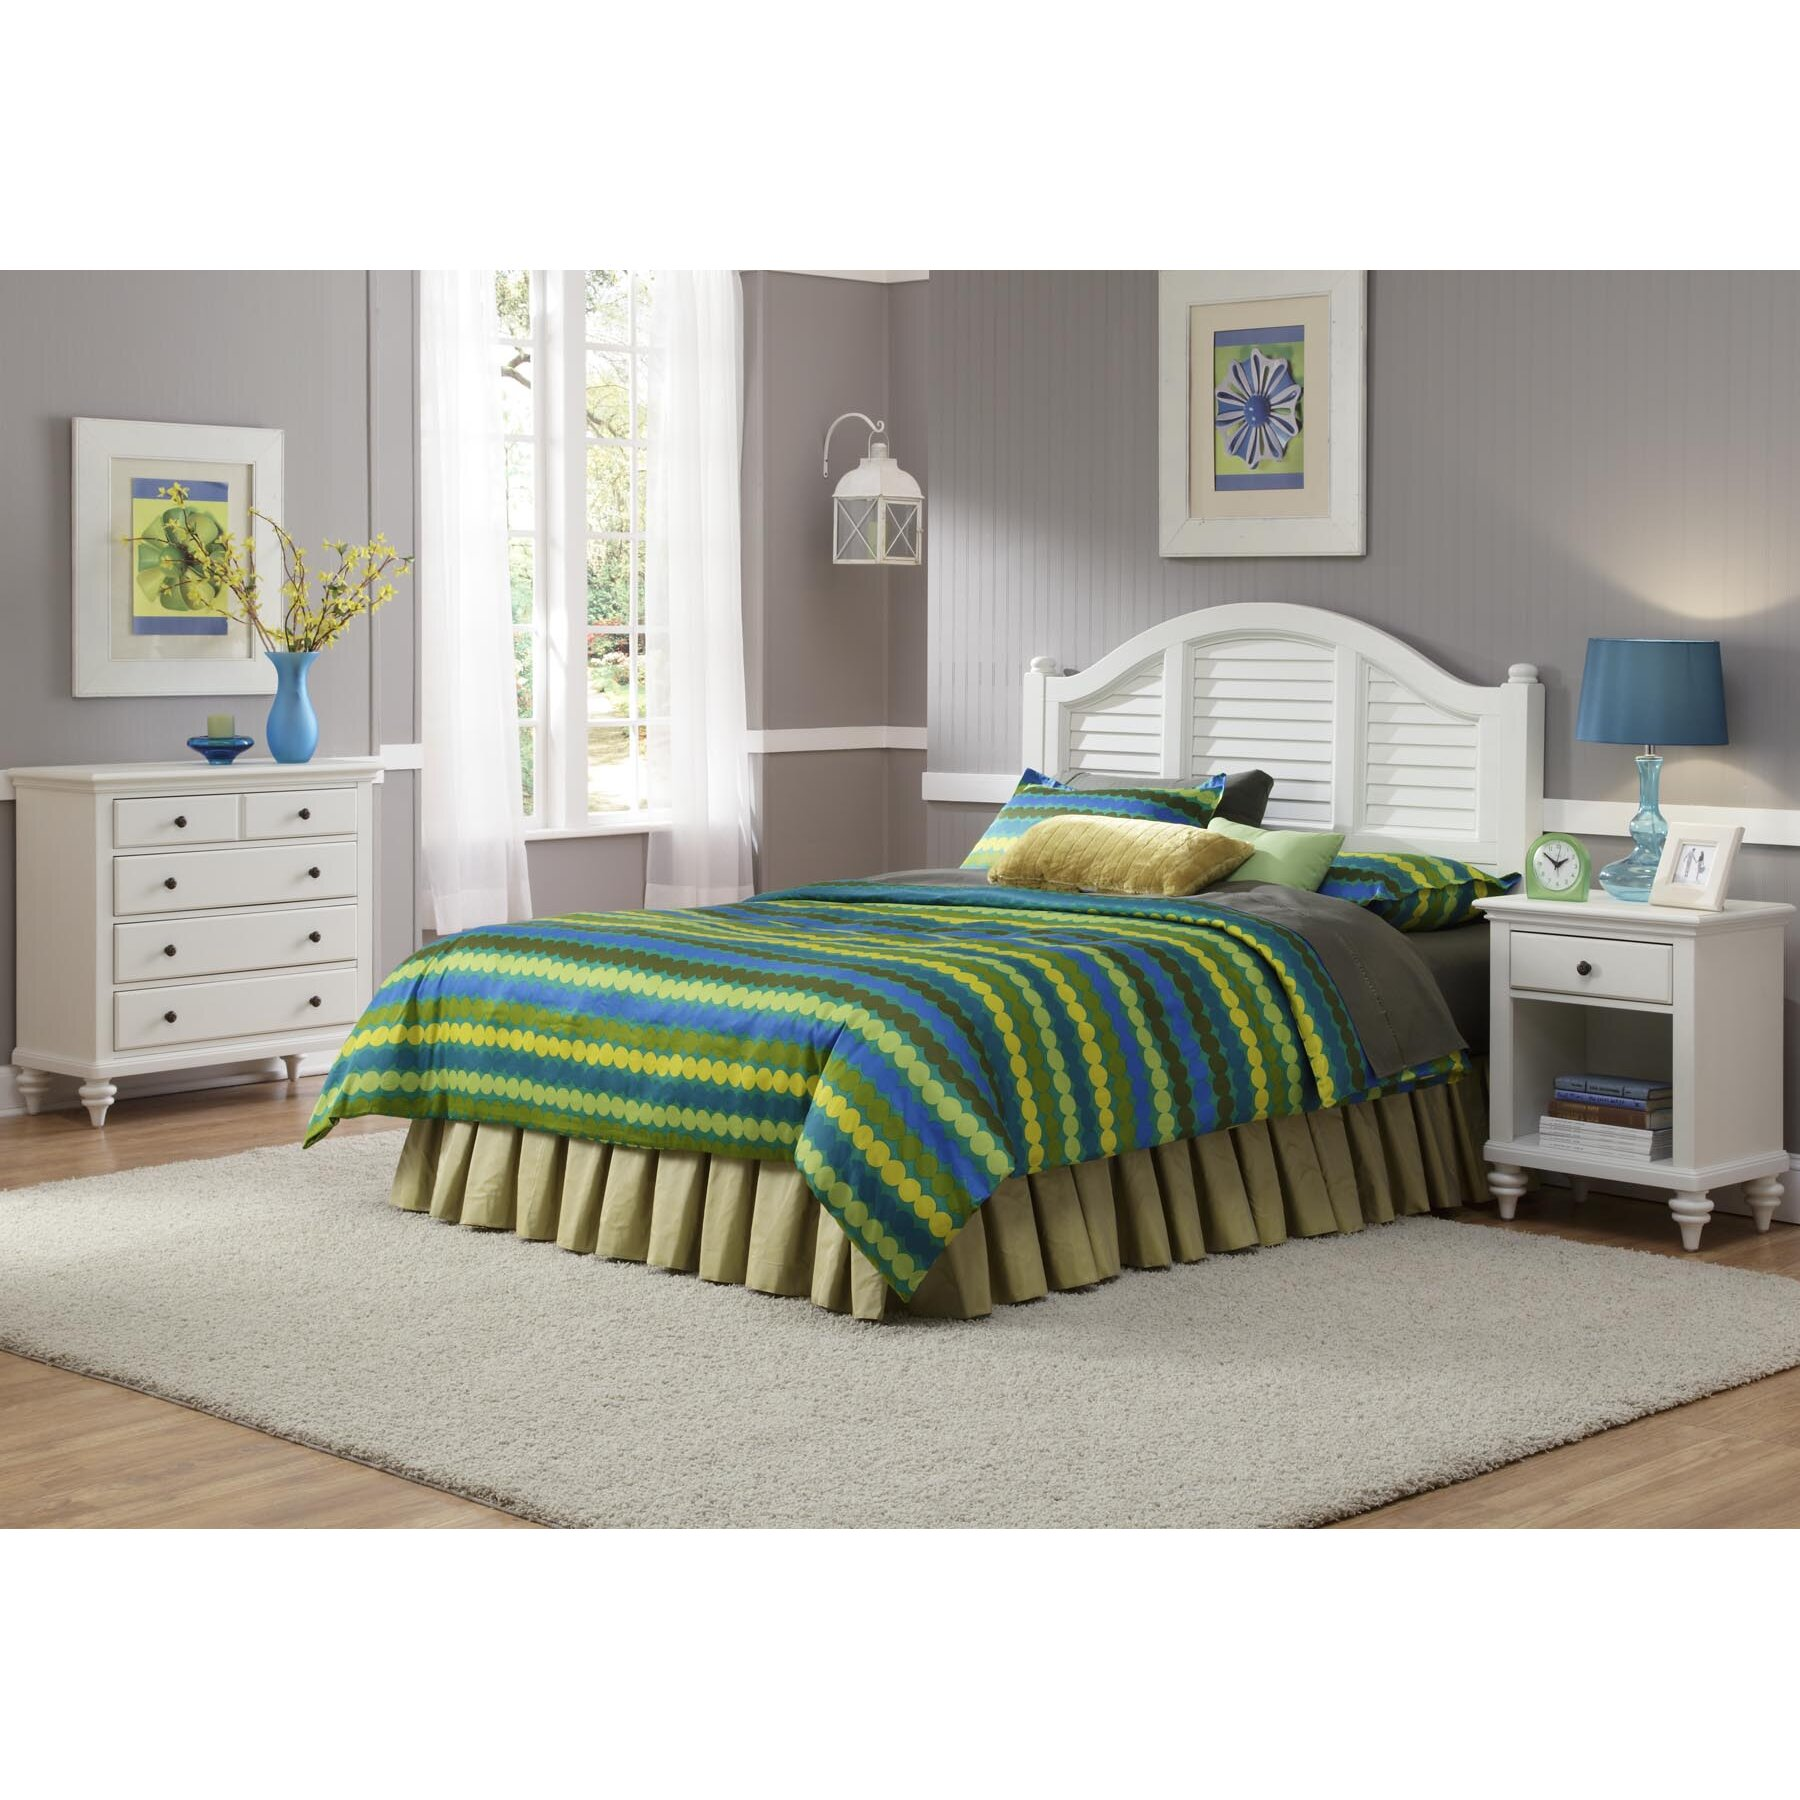 Kenduskeag platform 3 piece bedroom set wayfair for Bedroom 3 piece sets